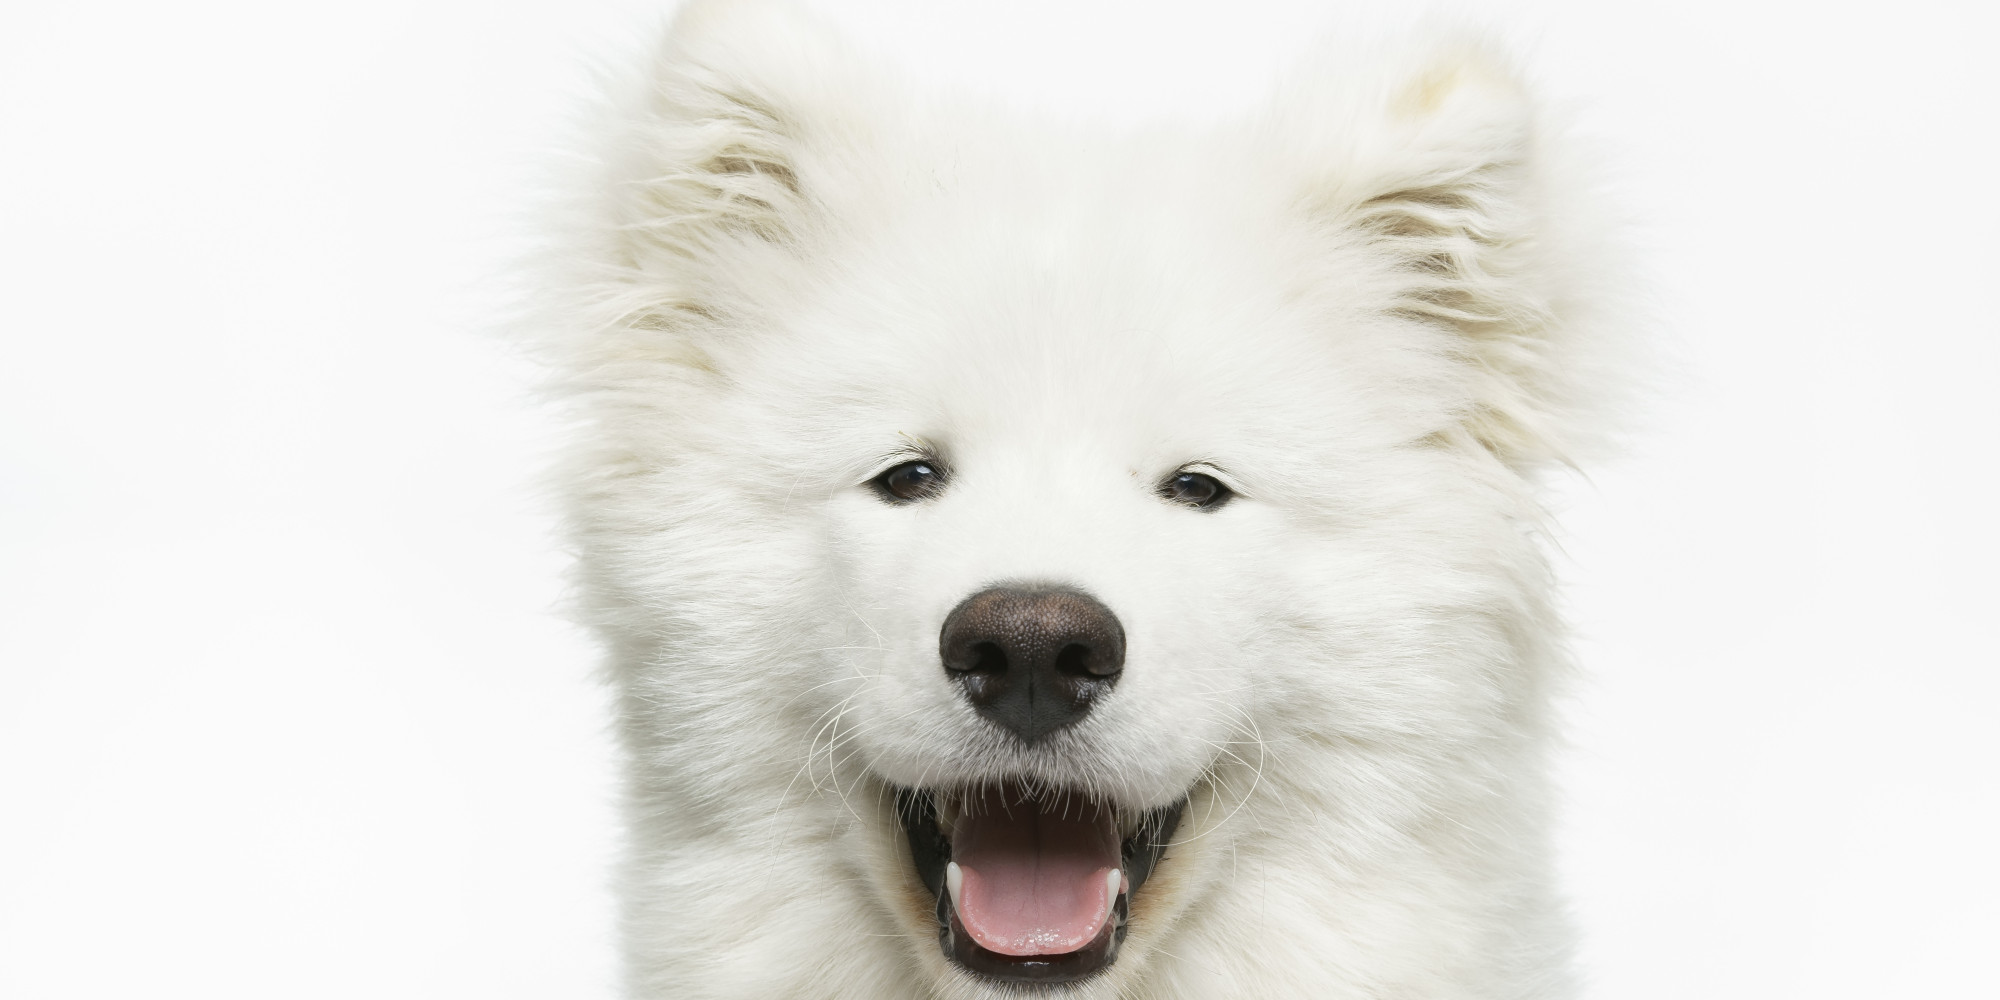 why dogs make better pets Nbc news better brings you wellness news and tips to make the most of your mind, your body and your life  and provides resources to care for the pet knowing their dog is ok allows people to .